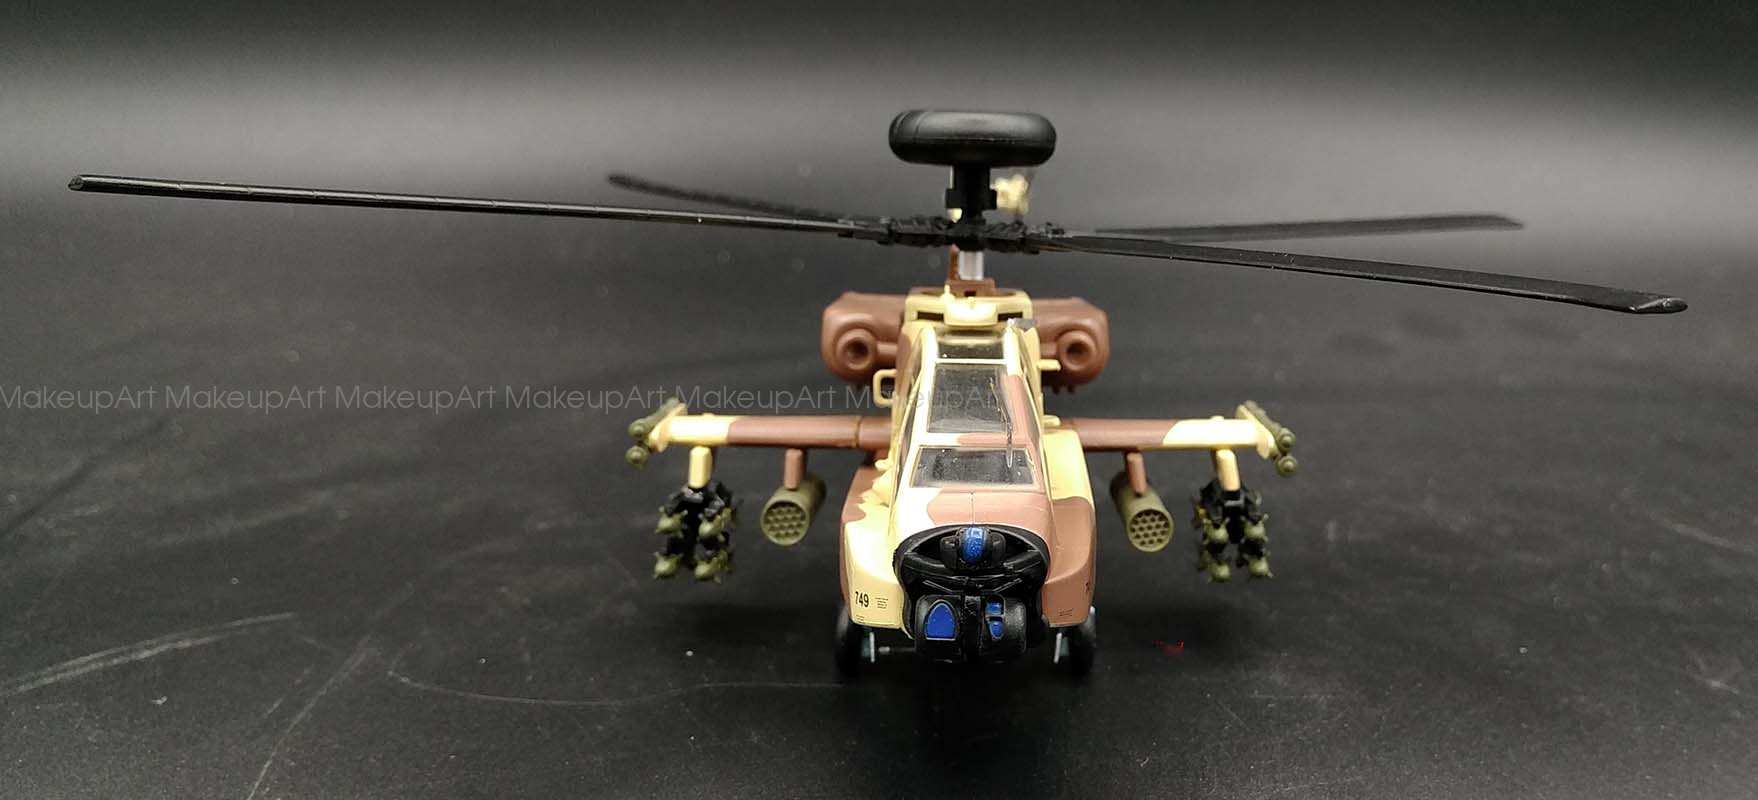 AH-64 Apache longbow Israel attack helicopter 1/72 ...